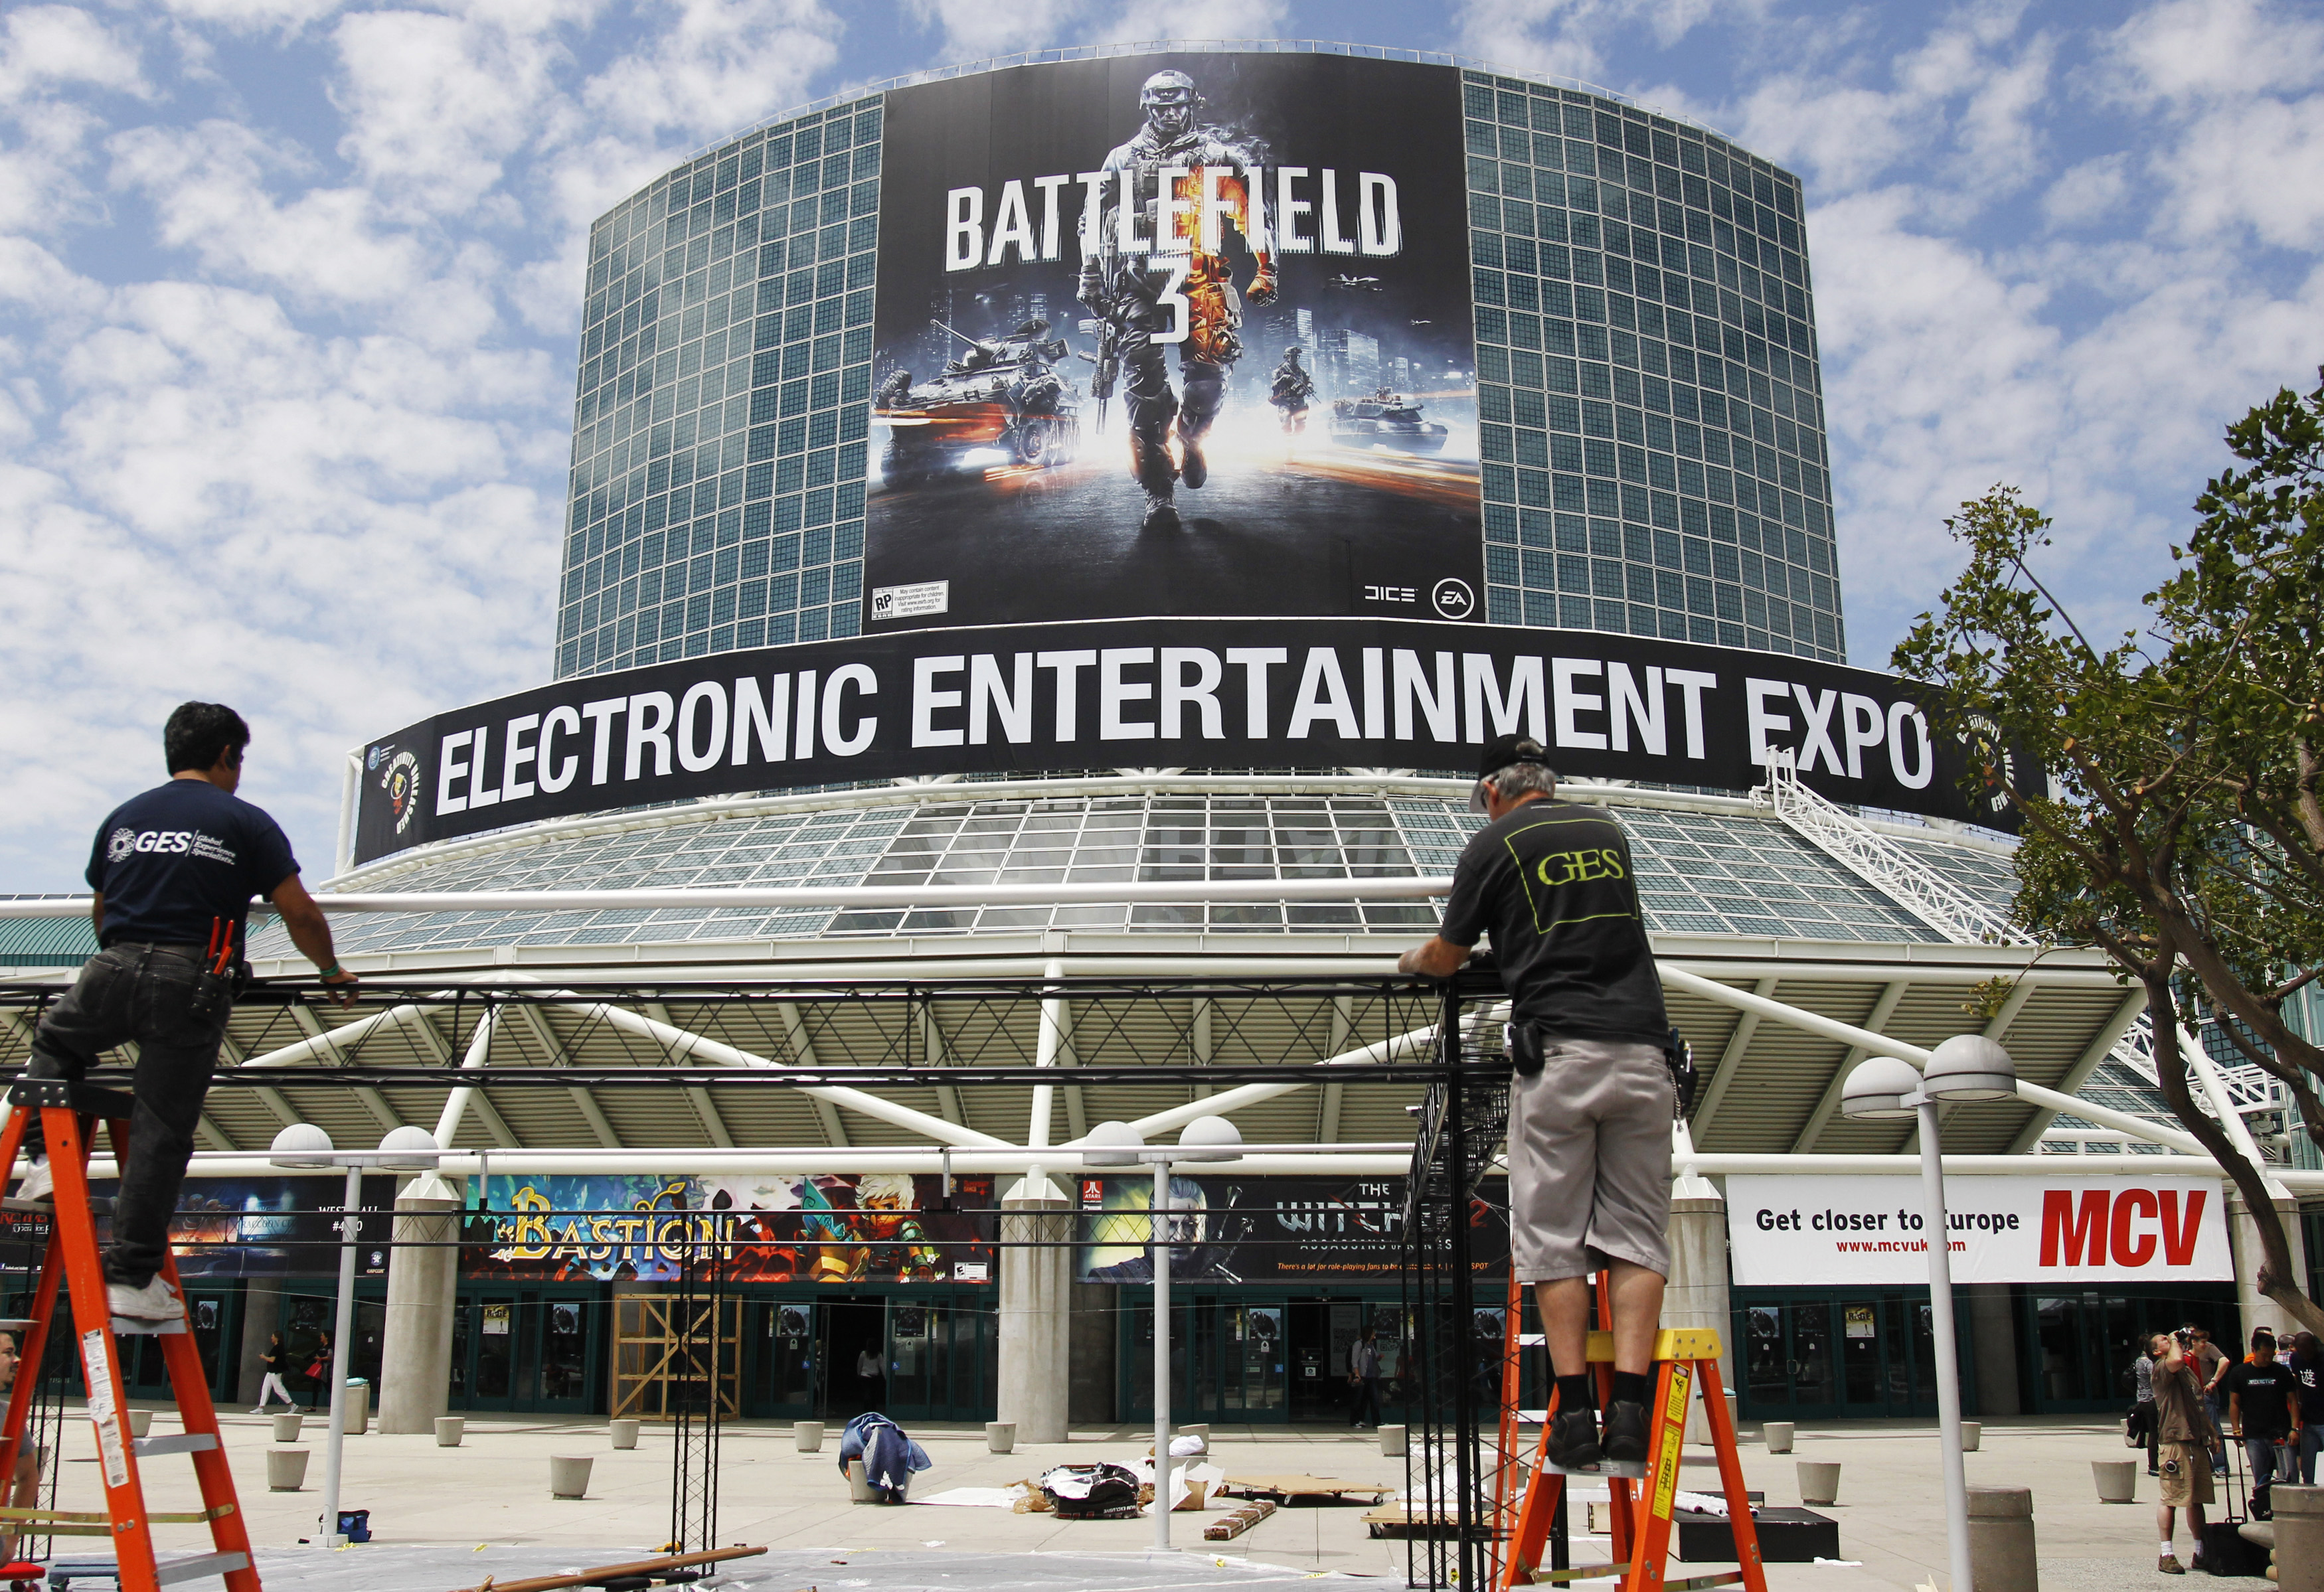 Preparations continue outside of the Los Angeles Convention Center ahead of the Electronic Entertainment Expo or E3 in Los Angeles June 5, 2011. REUTERS/Danny Moloshok (UNITED STATES - Tags: BUSINESS SOCIETY)